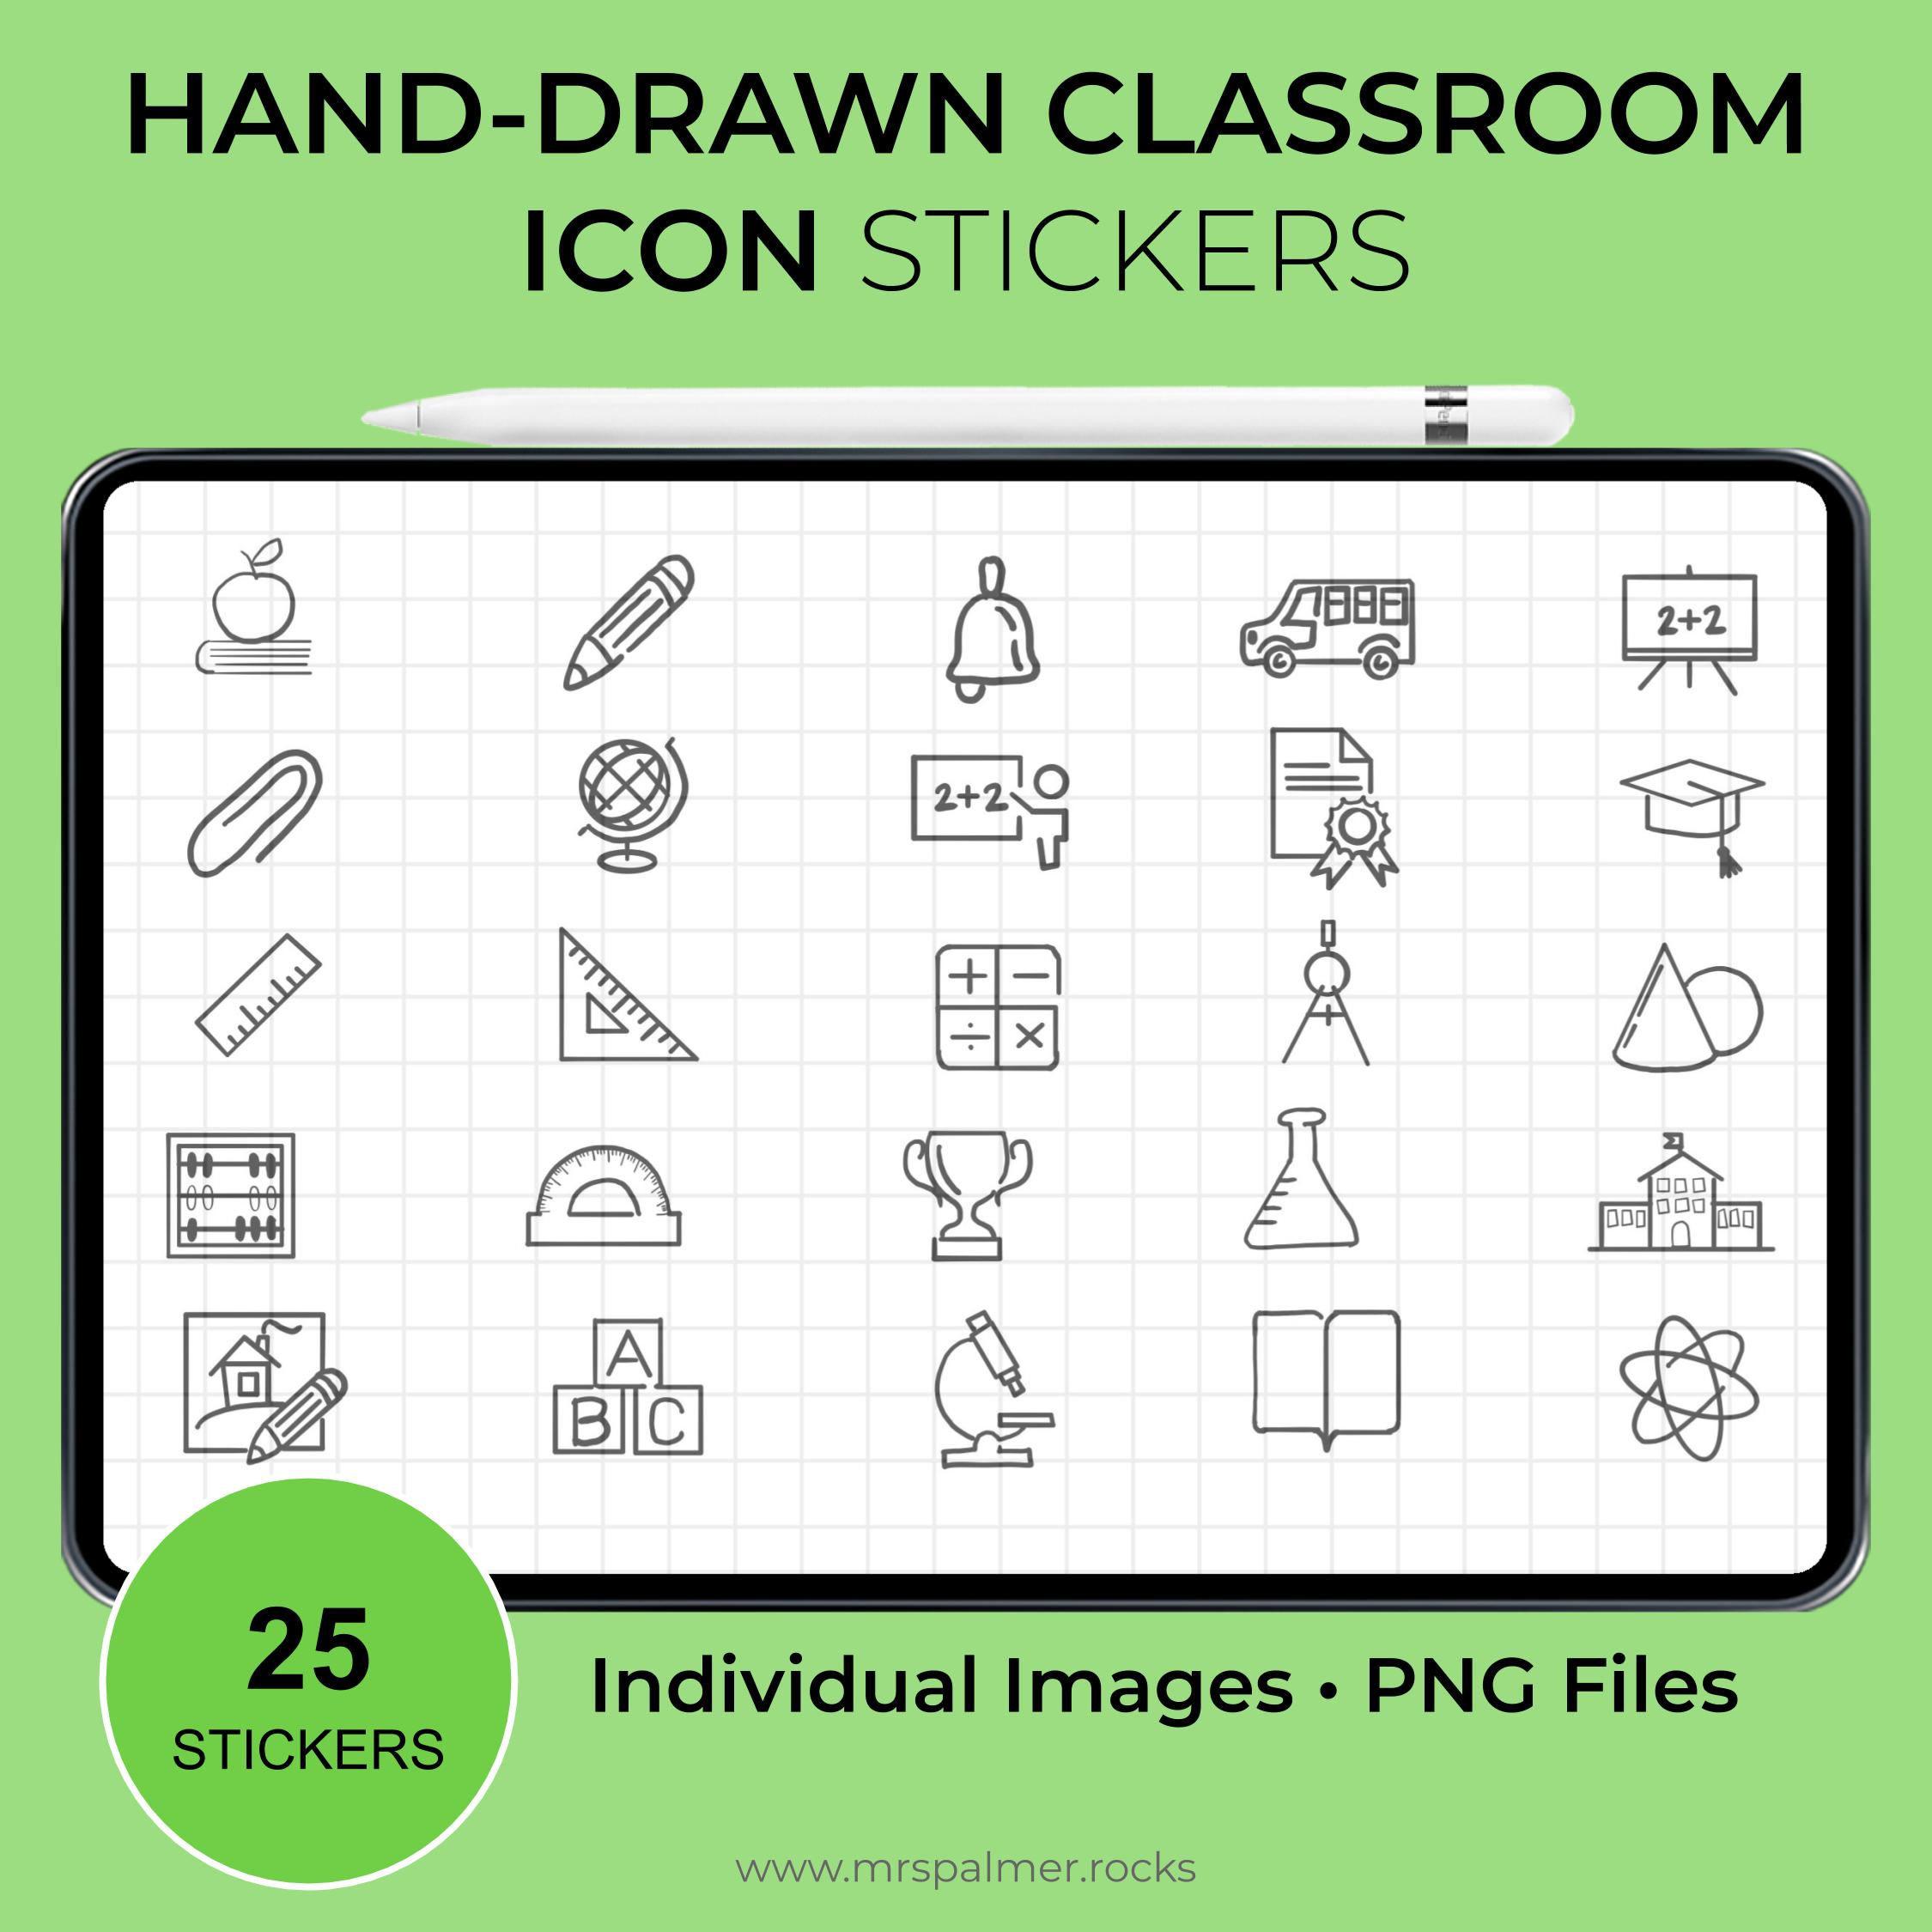 Hand-Drawn Classroom Icon Stickers